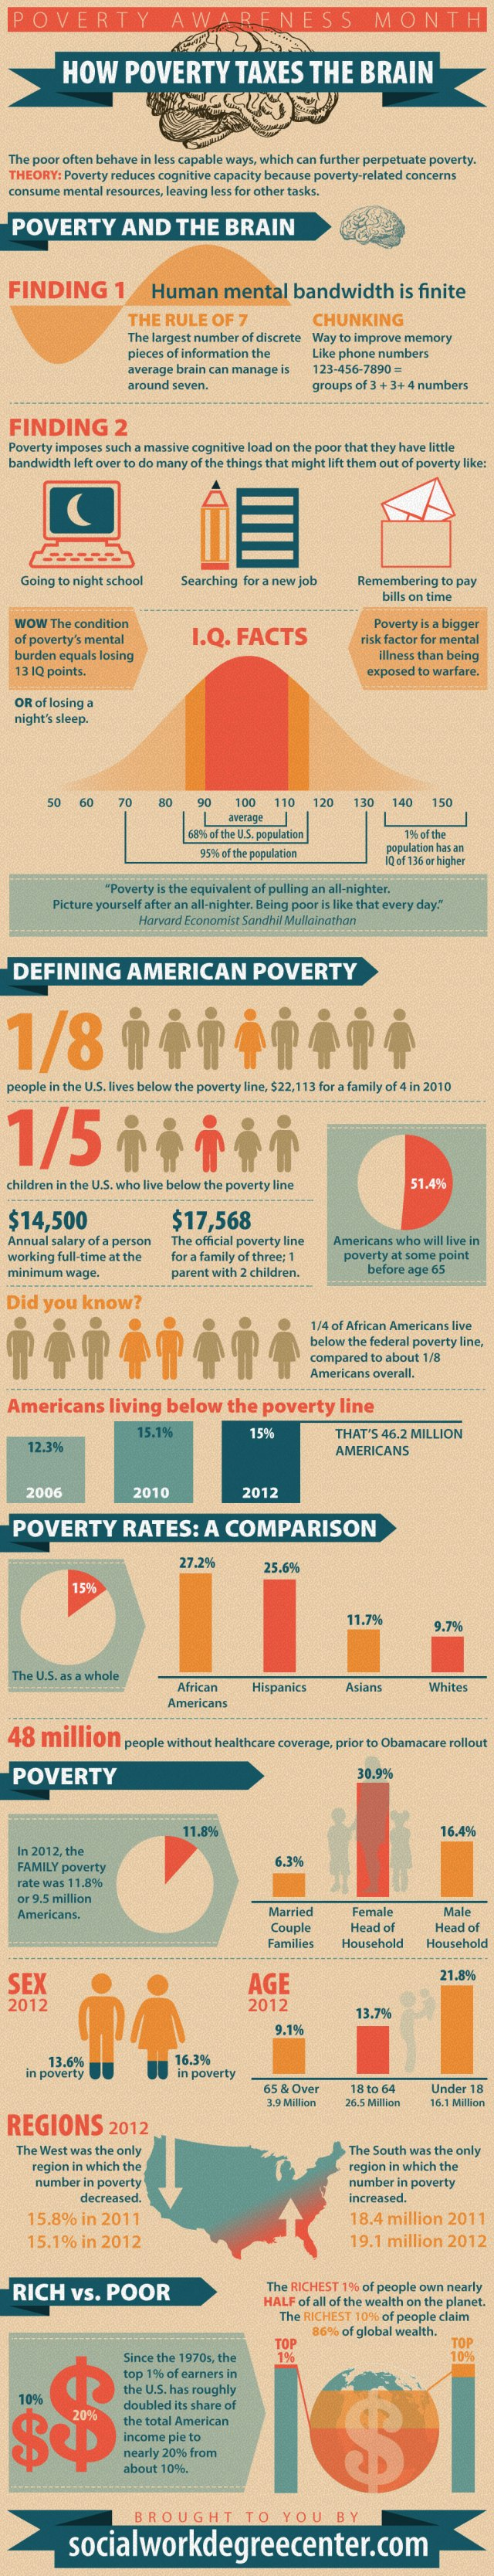 Poverty and the Brain